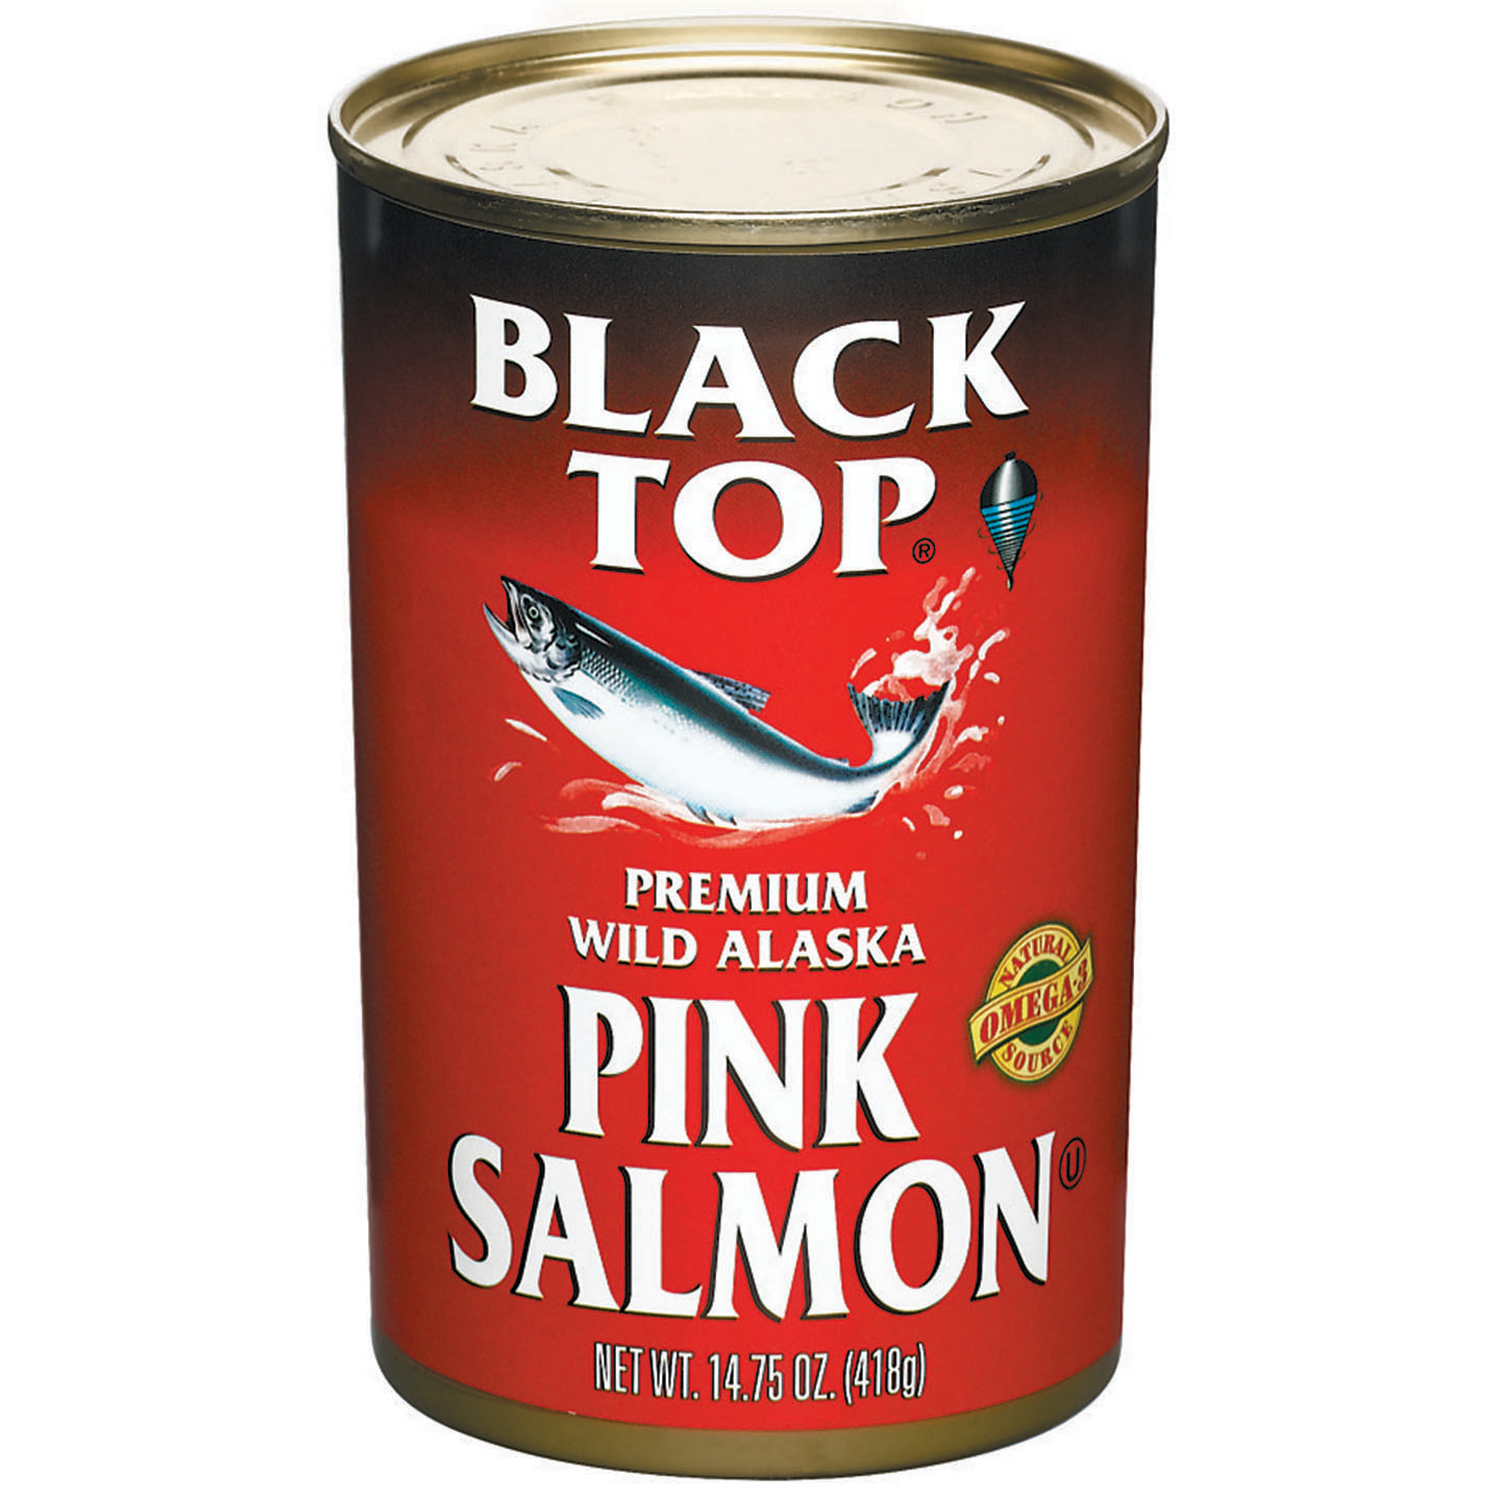 Black Top Premium Wild Alaska Pink Salmon 14.75 Oz Can by Icicle Seafoods